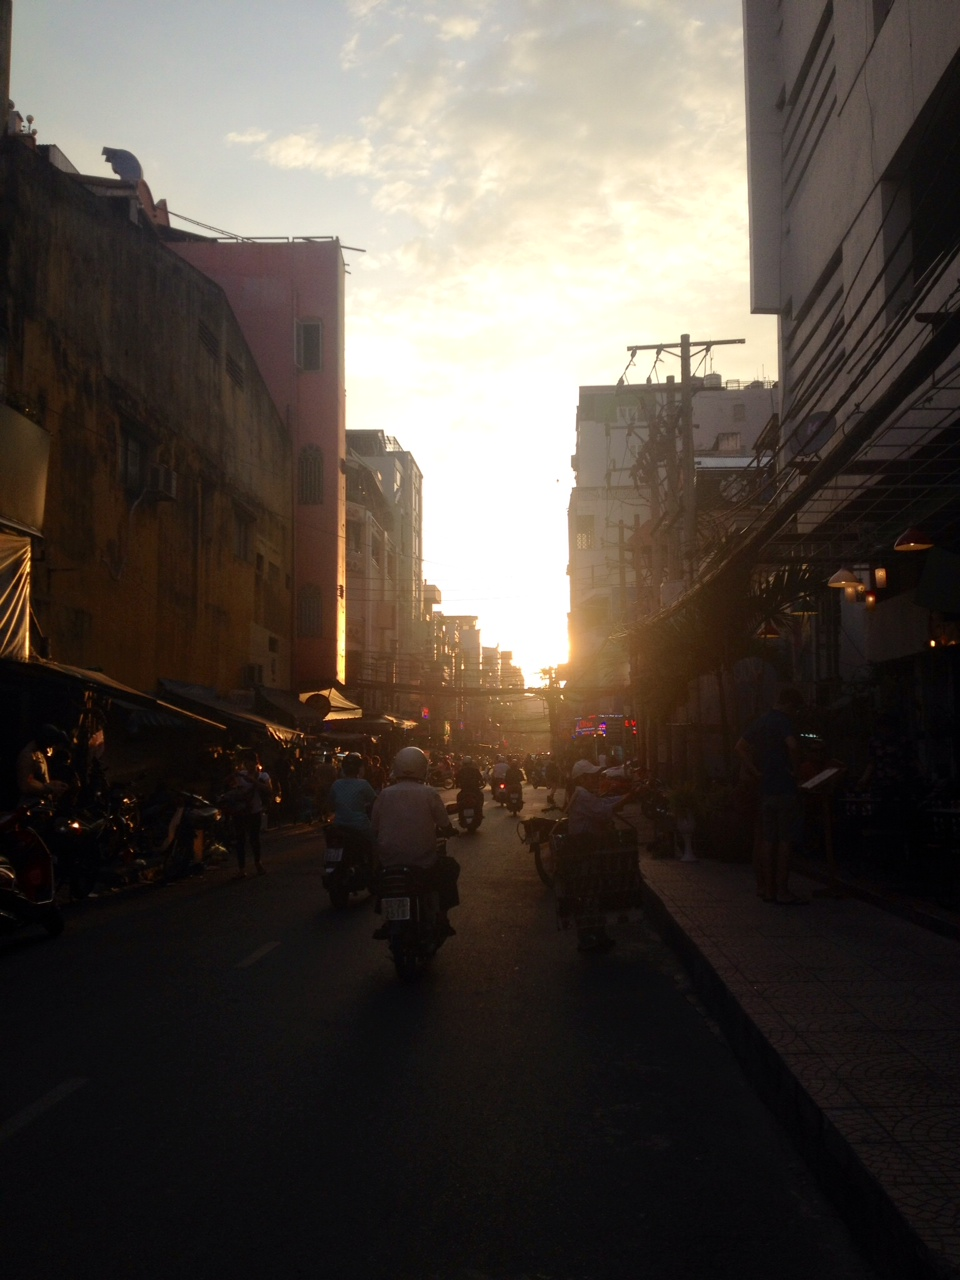 Vietnam By Motorcycle – There and Gone to Saigon